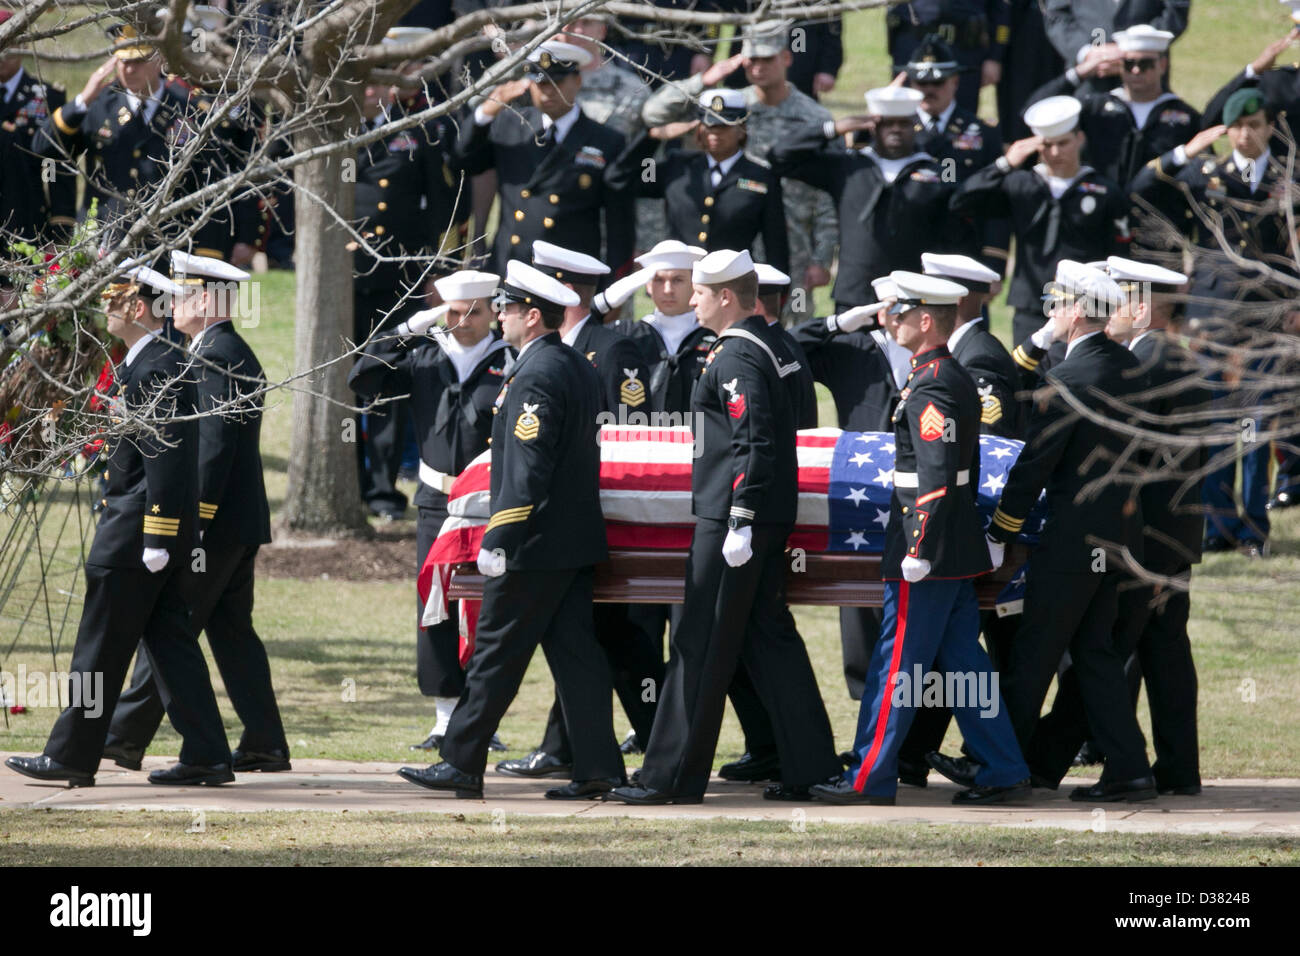 Death Of Fellow Military Stock Photos & Death Of Fellow Military